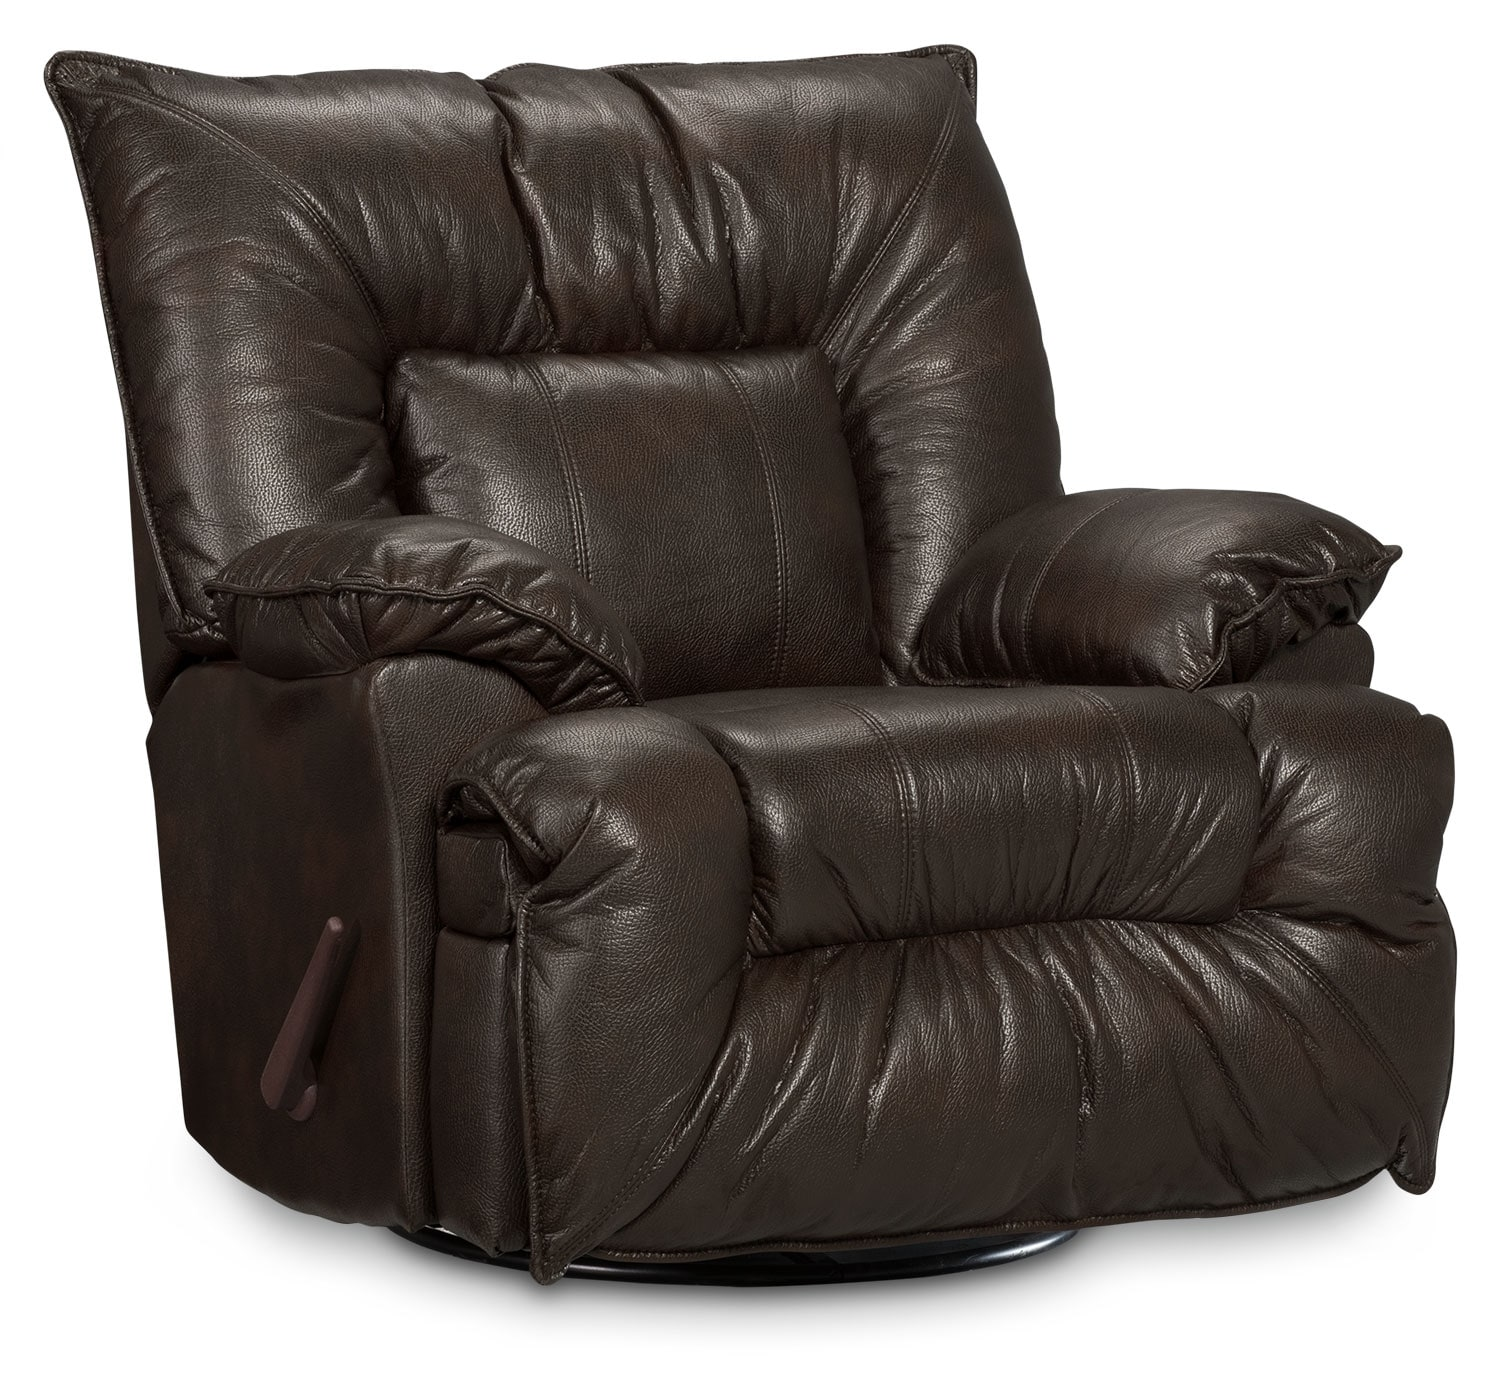 Living Room Furniture - Designed2B Recliner 7726 Leather-Like Fabric Swivel Glider Chair - Chocolate